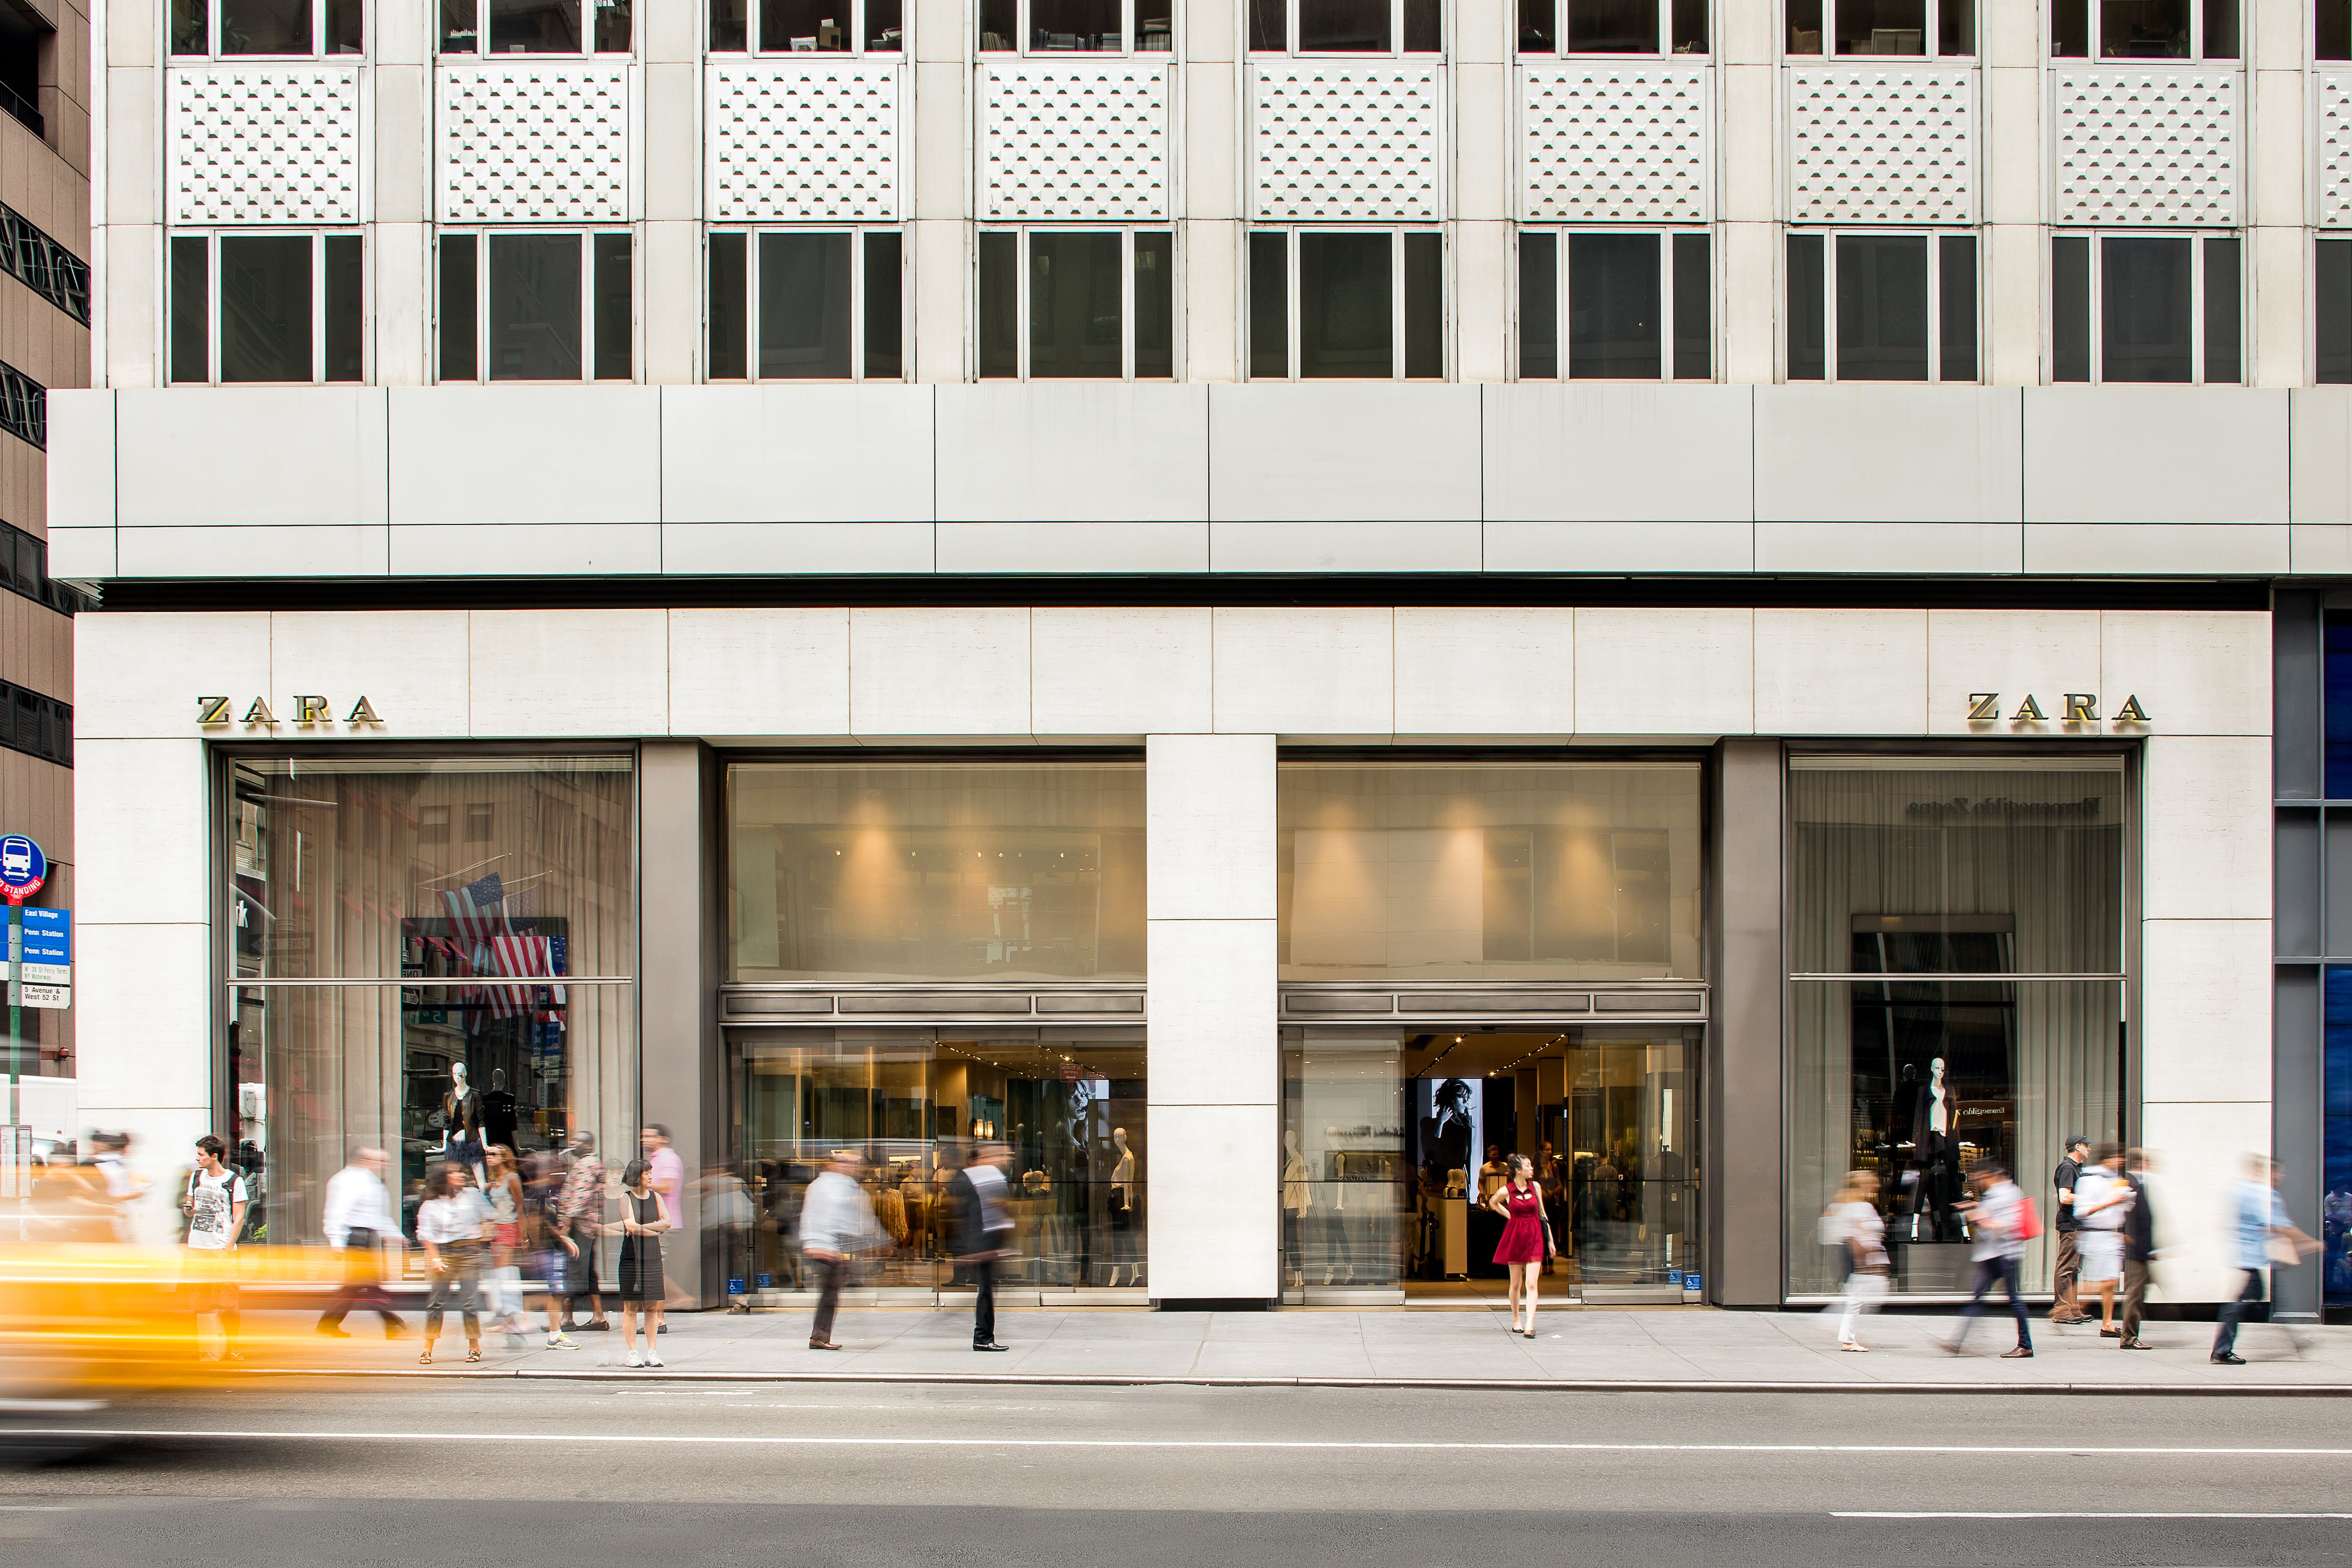 interview insider how to get hired at zara